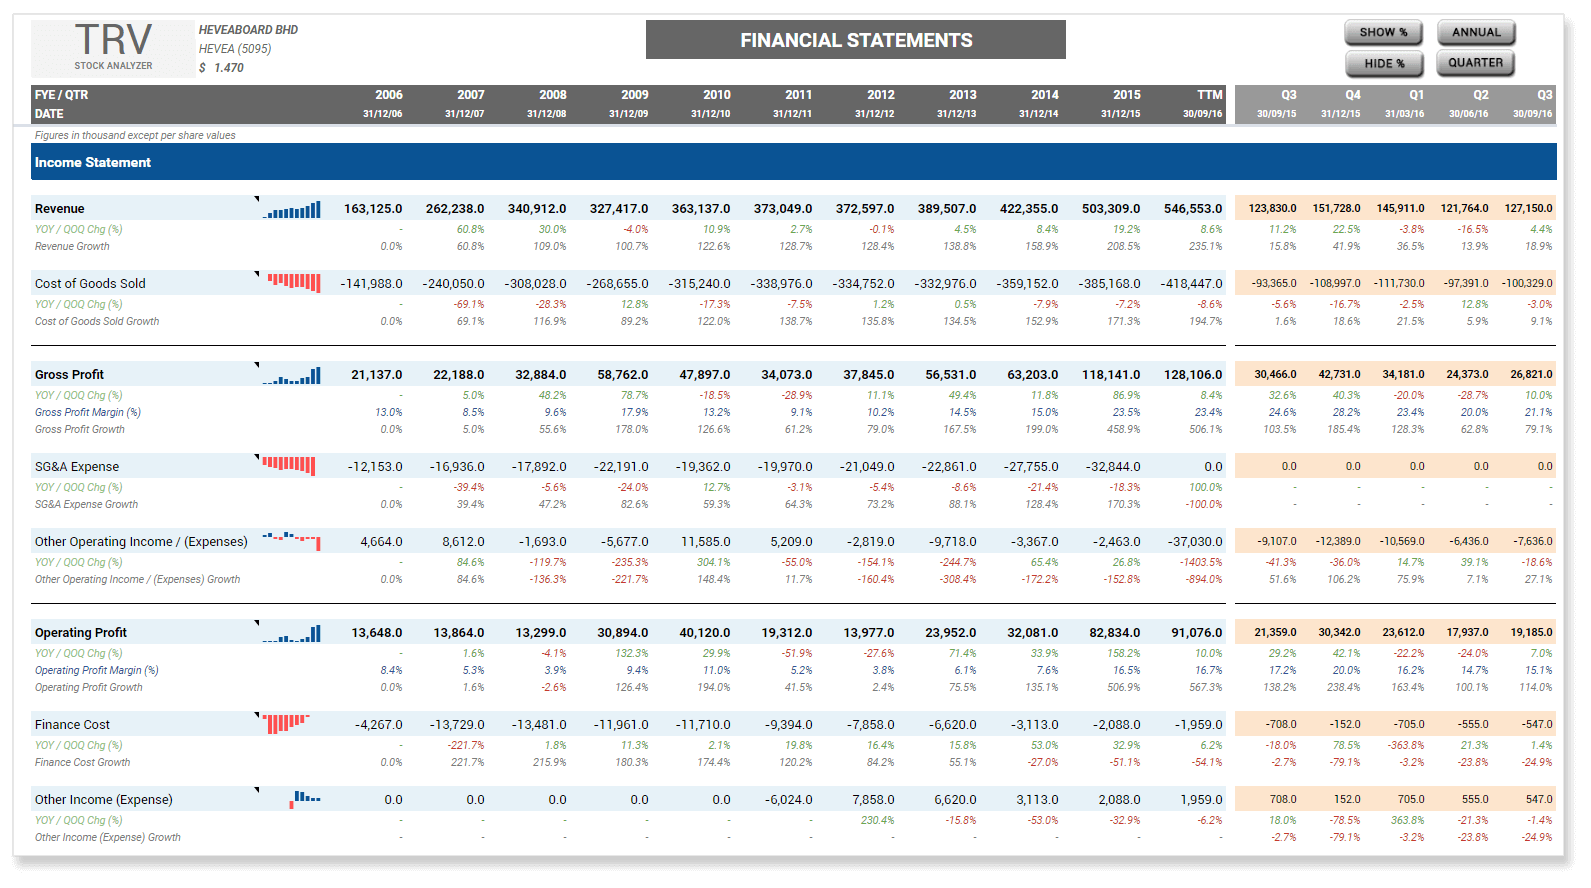 Common Size Analysis Financial Statement